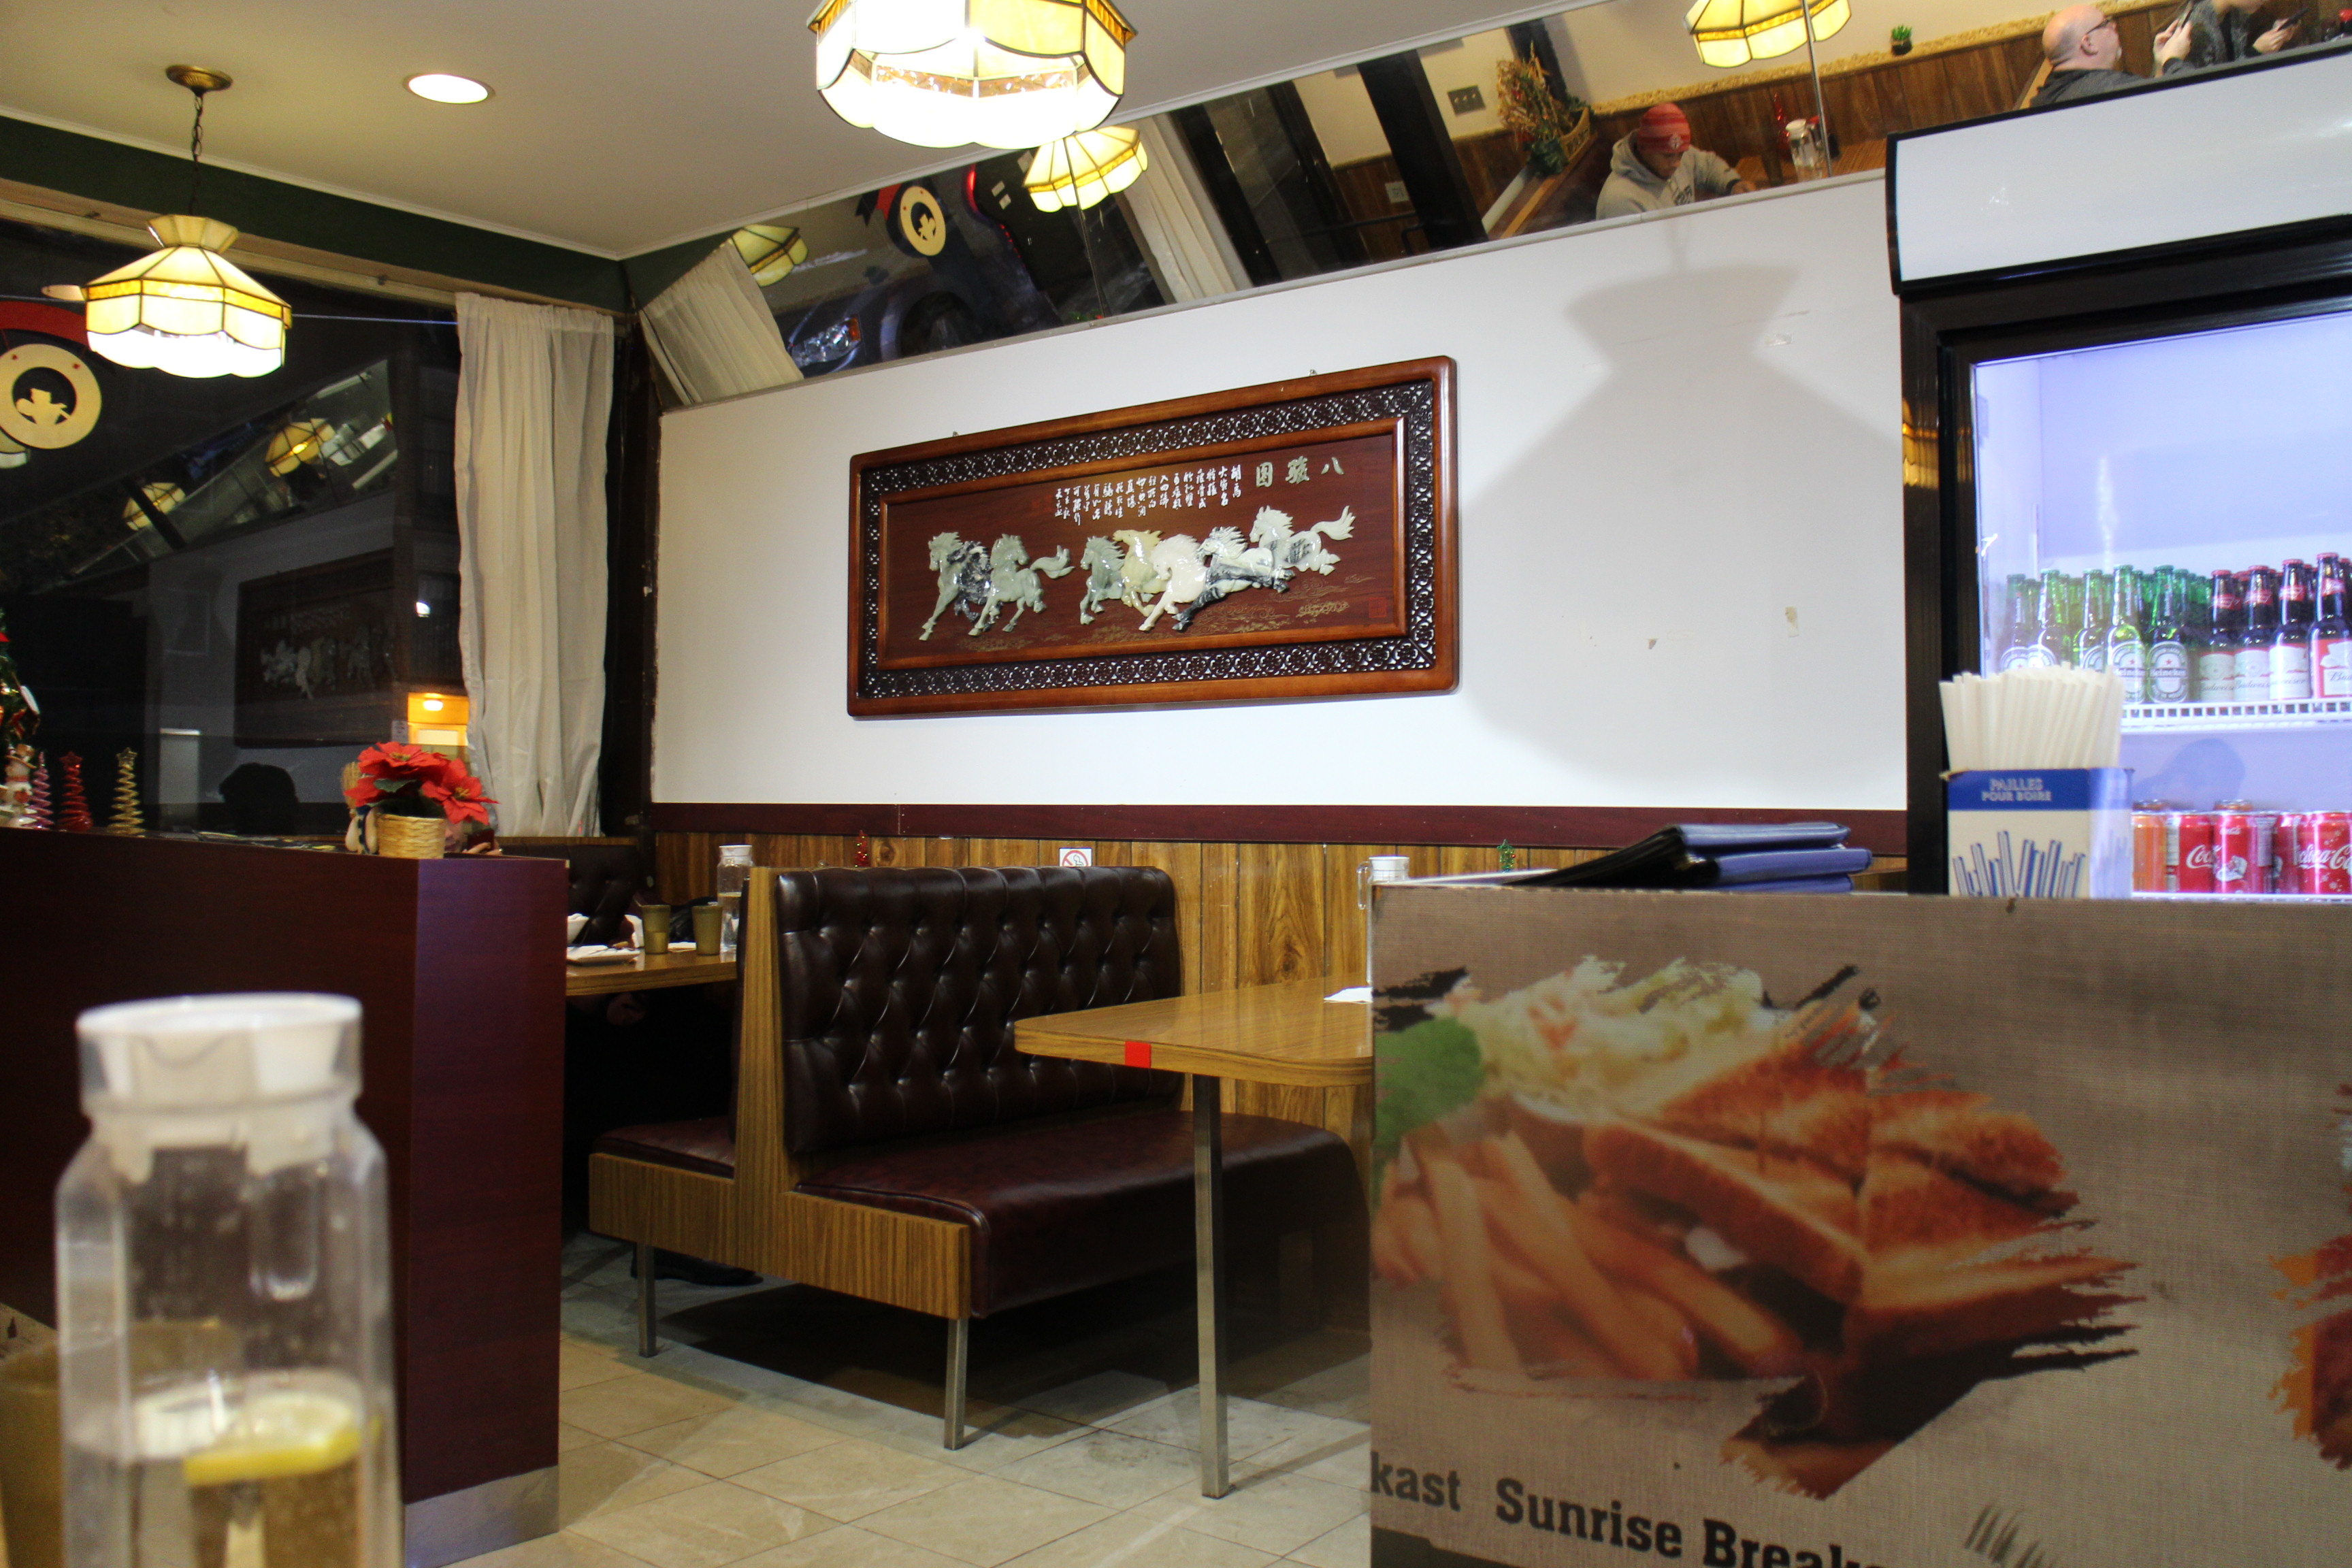 Sunrise Restaurant to Noodles One | Hamilton Ontario The Inlet Online Hamilton News Photo 3